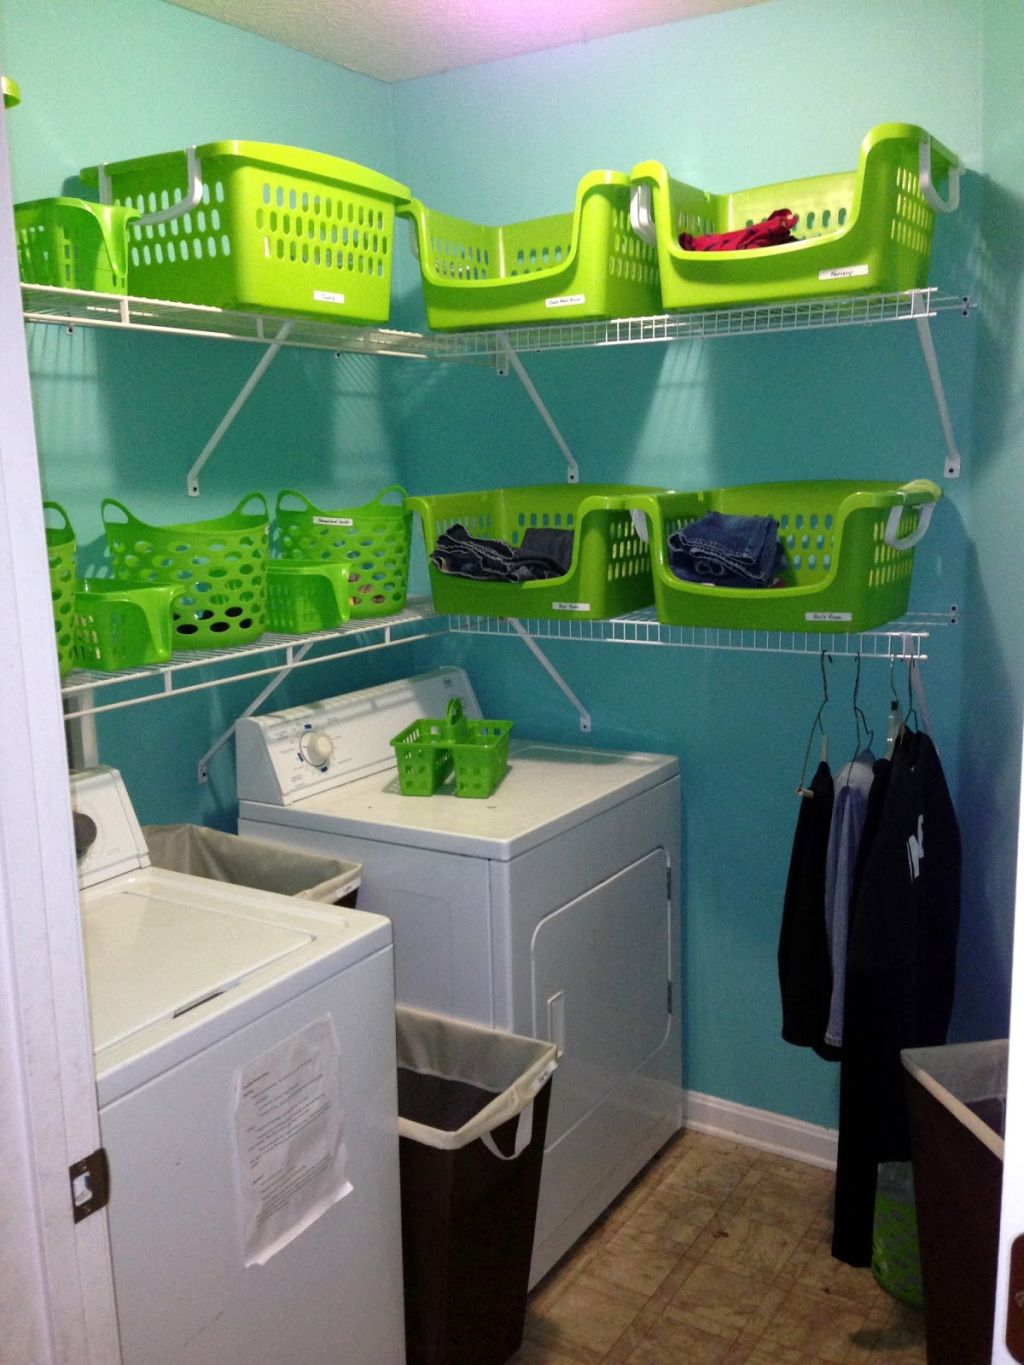 Office design a home office home office organizing ideas designs for - Small Laundry Room Storage Solutions With Basket Racks